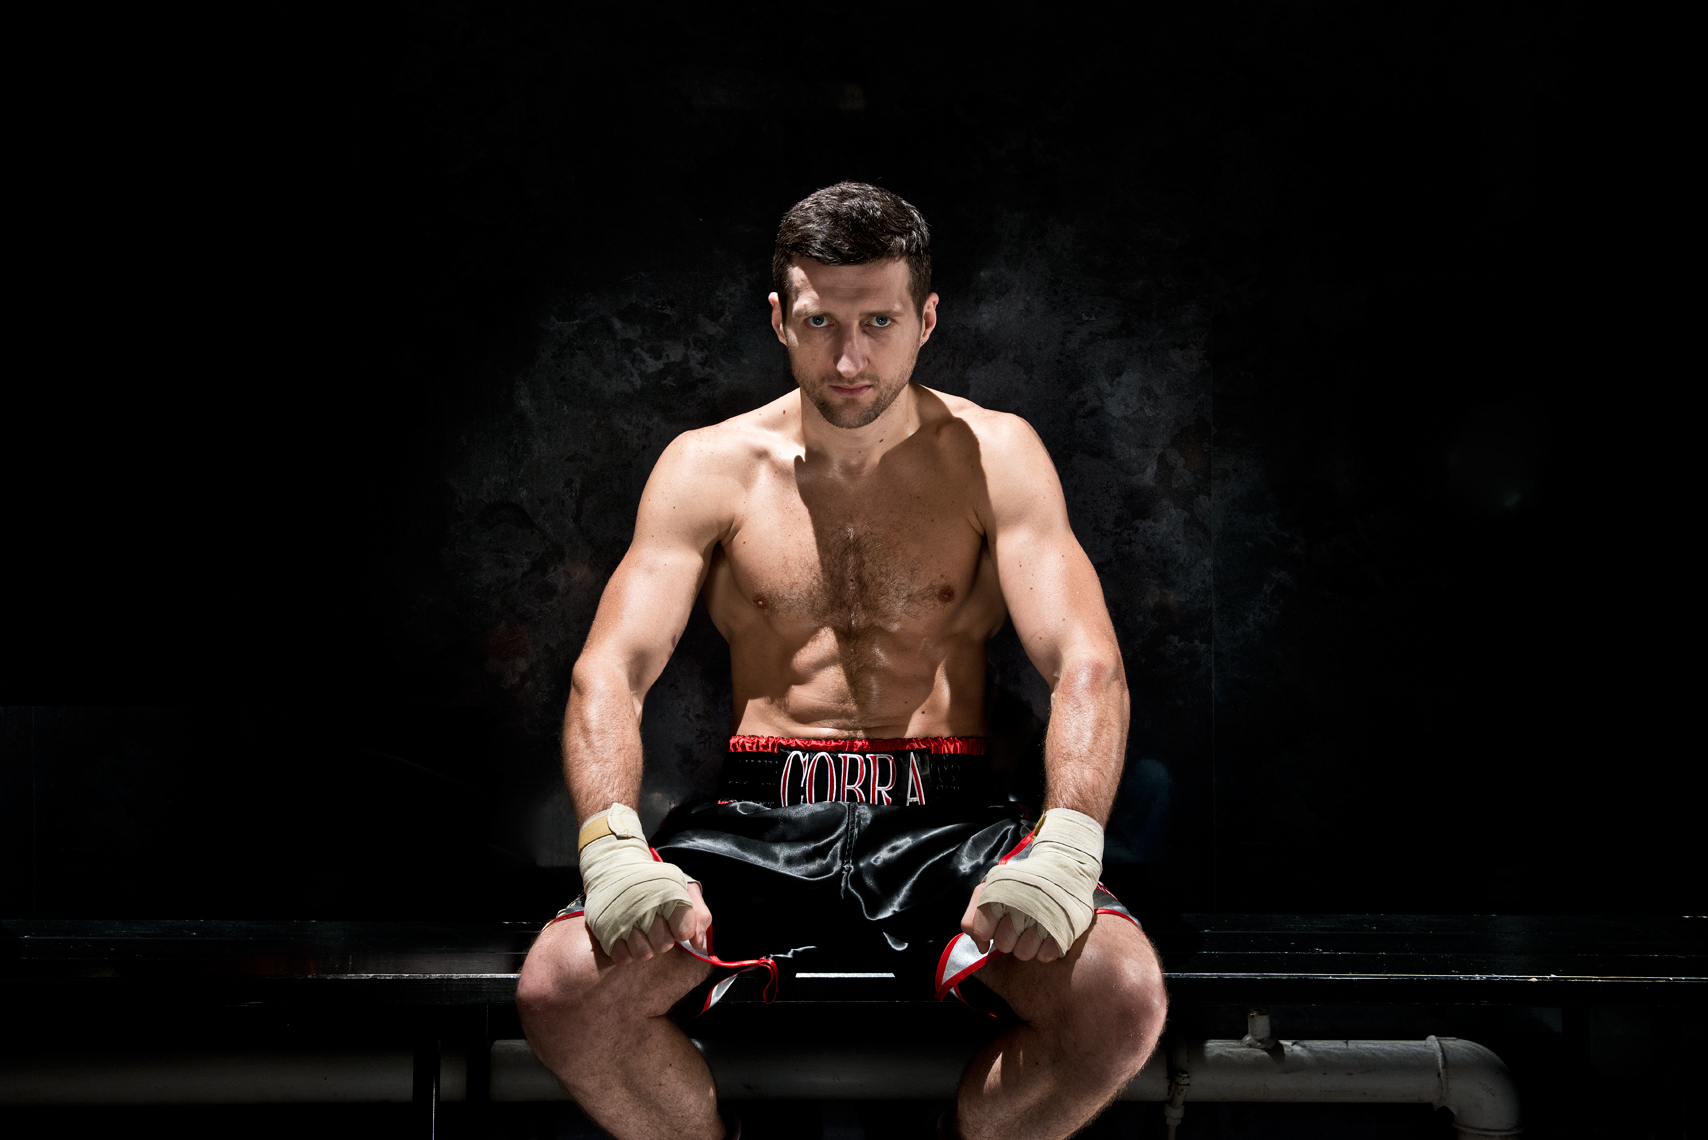 carl-froch-s-body-measurements